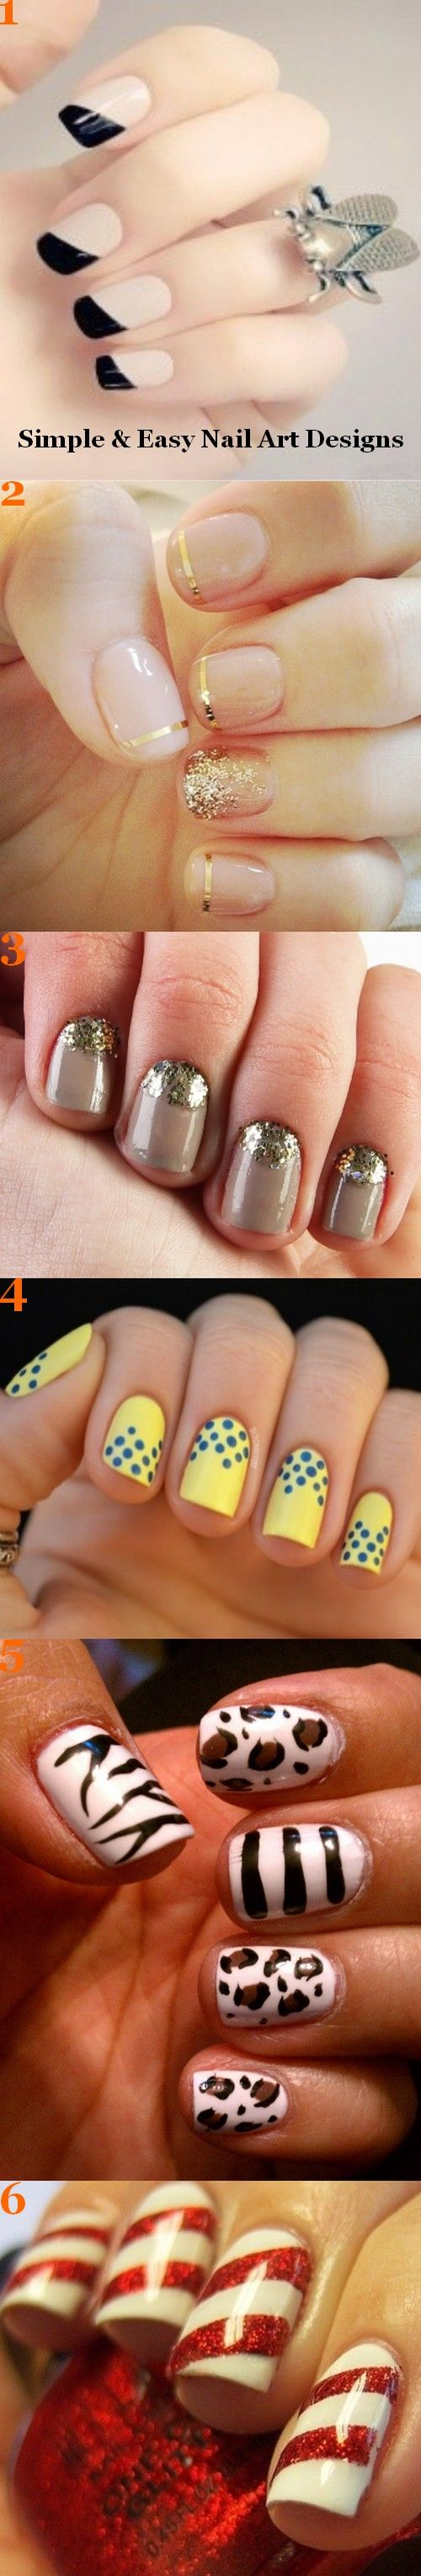 Simple and easy nail art designs. | Nail care advice | Pinterest ...